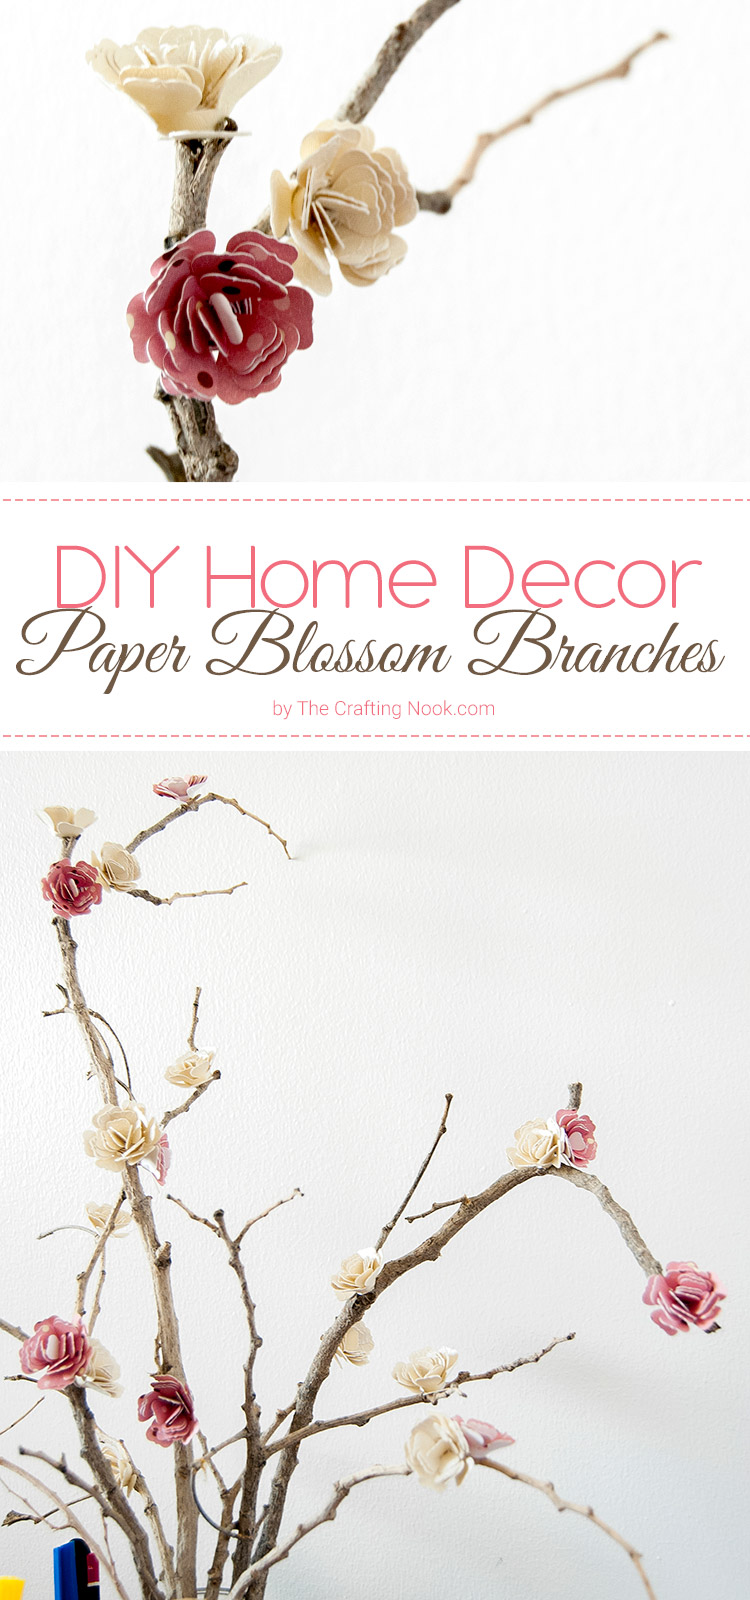 DIY Home Decor Paper Flowers Blossom Branches